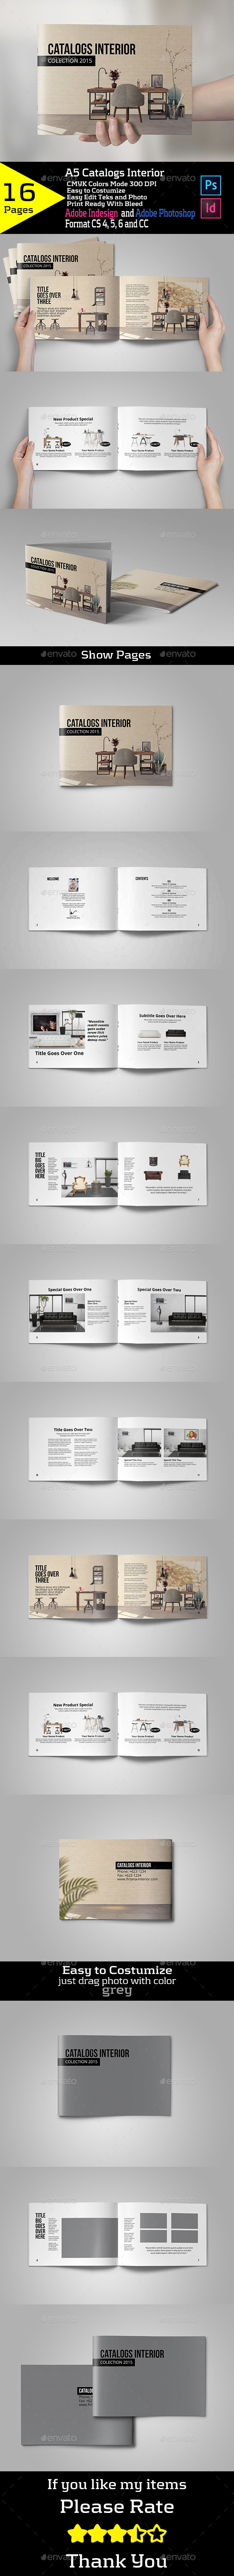 Catalogs Interior - Brochures Print Templates